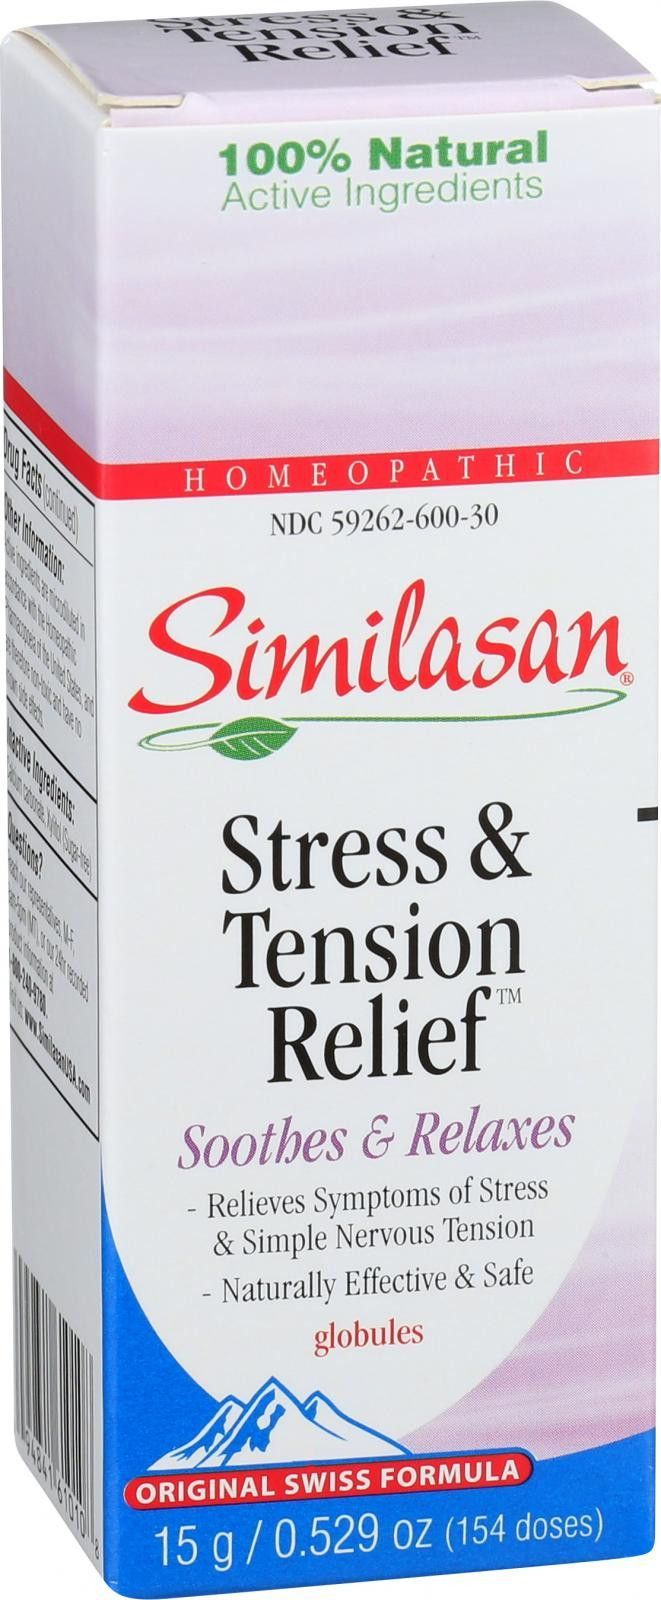 work at a high stress job a supermarket retail home alone if similasan healthy relief stress and tension relief globules 529 oz